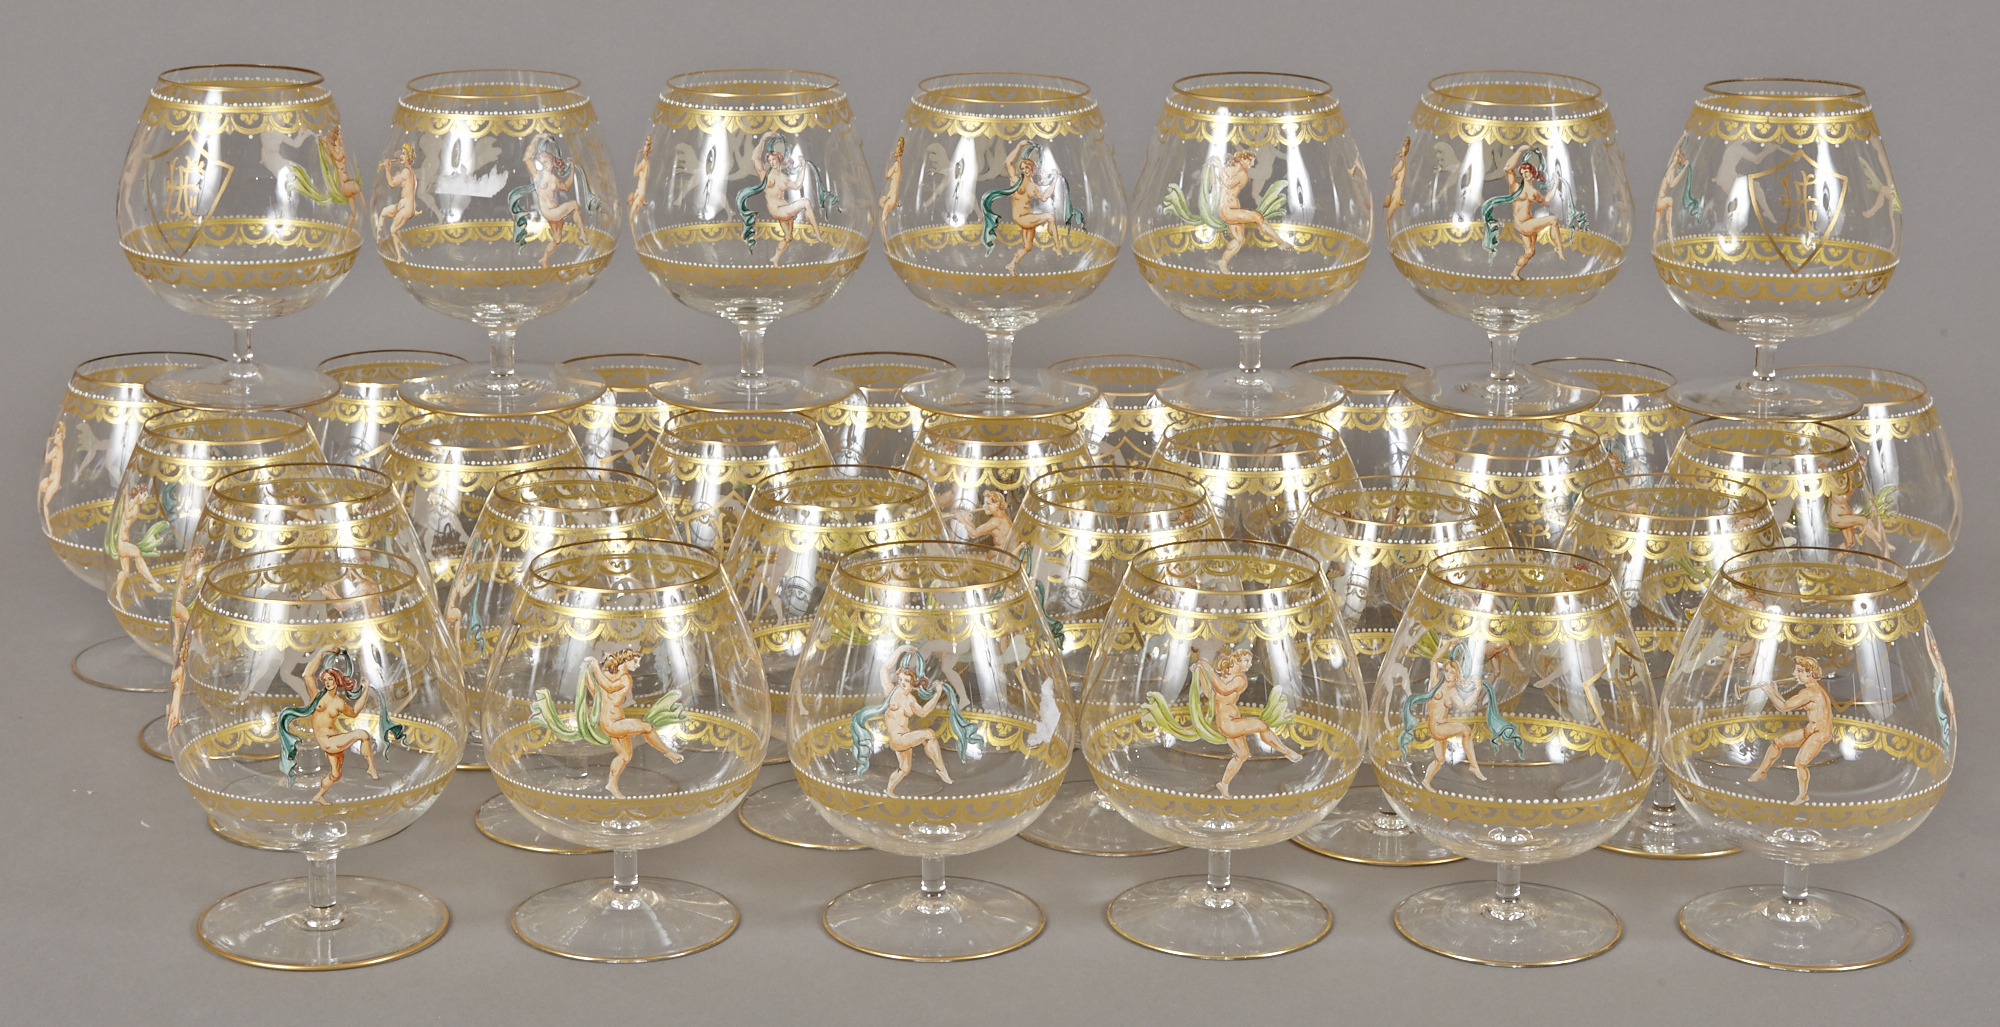 Lot image - Set of Thirty-Four Monogramed Glass Brandy Snifters from the Henry Ford II Service